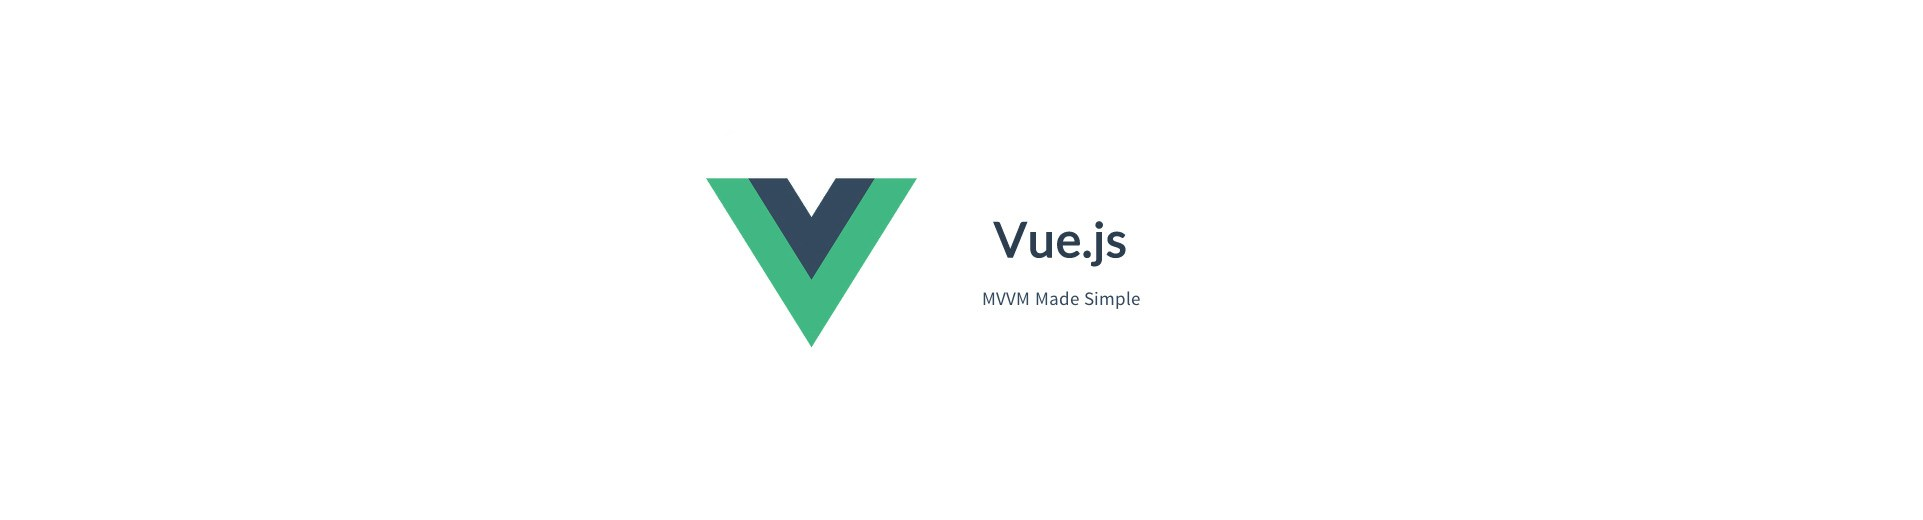 Up & Running with Vue js 2 0 by creating a simple blog